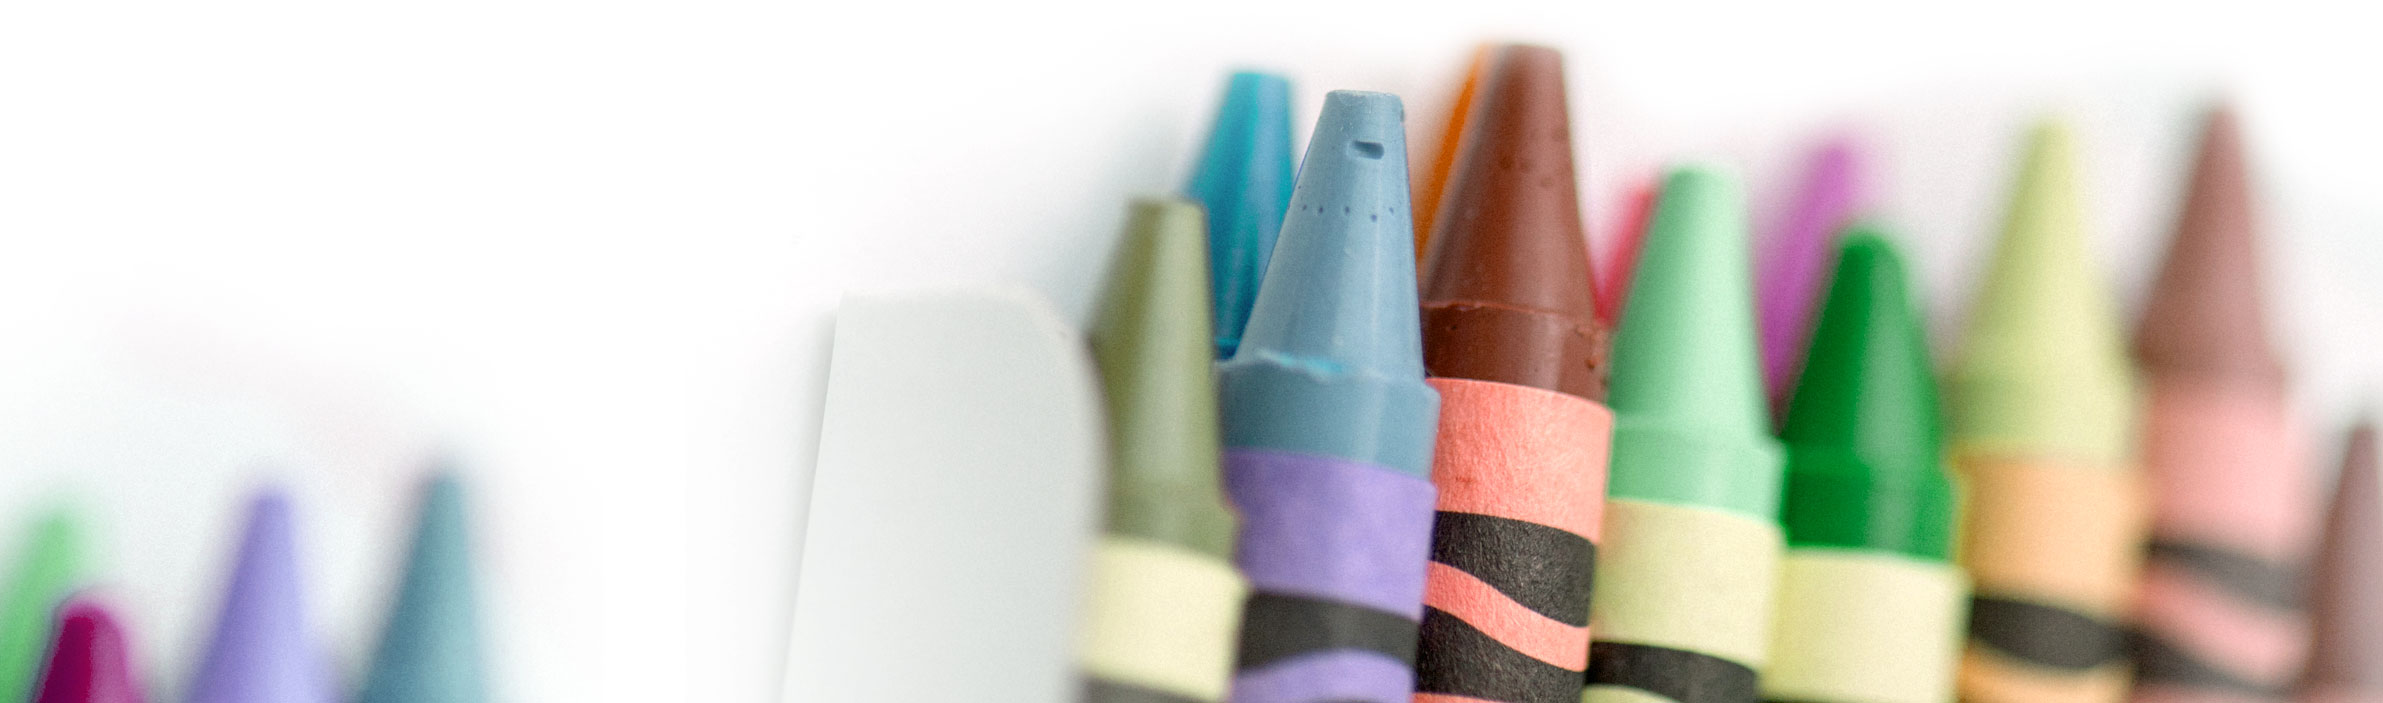 Crayons In Nursery School